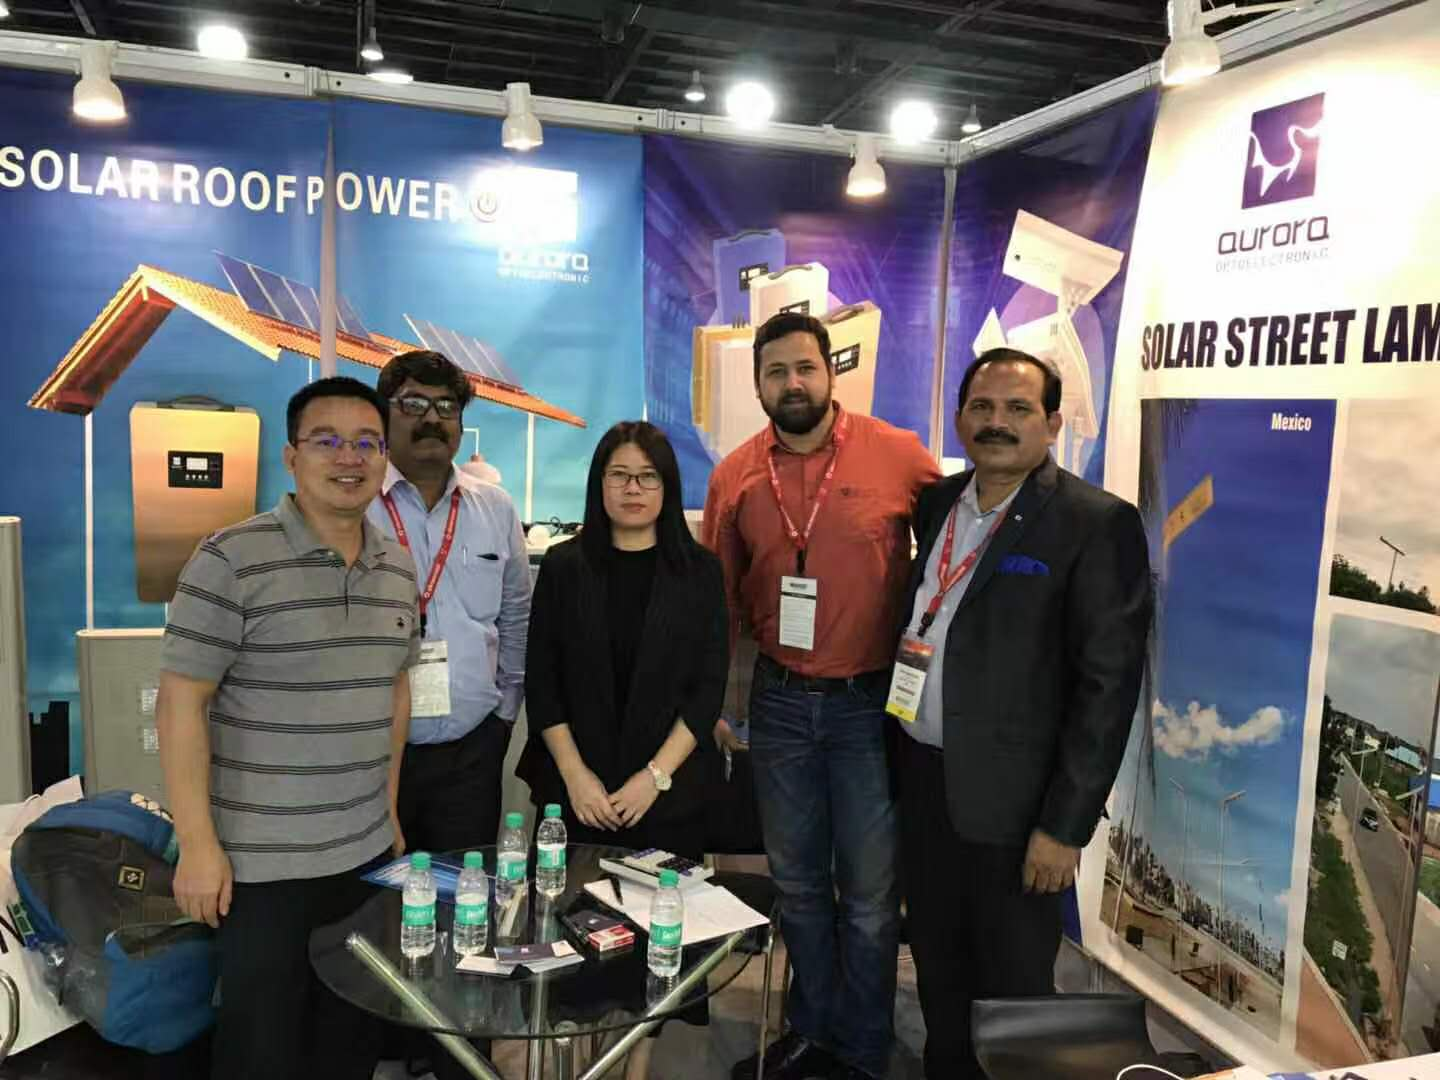 AURORA attend solar power show Renewable Energy India Expo 2018